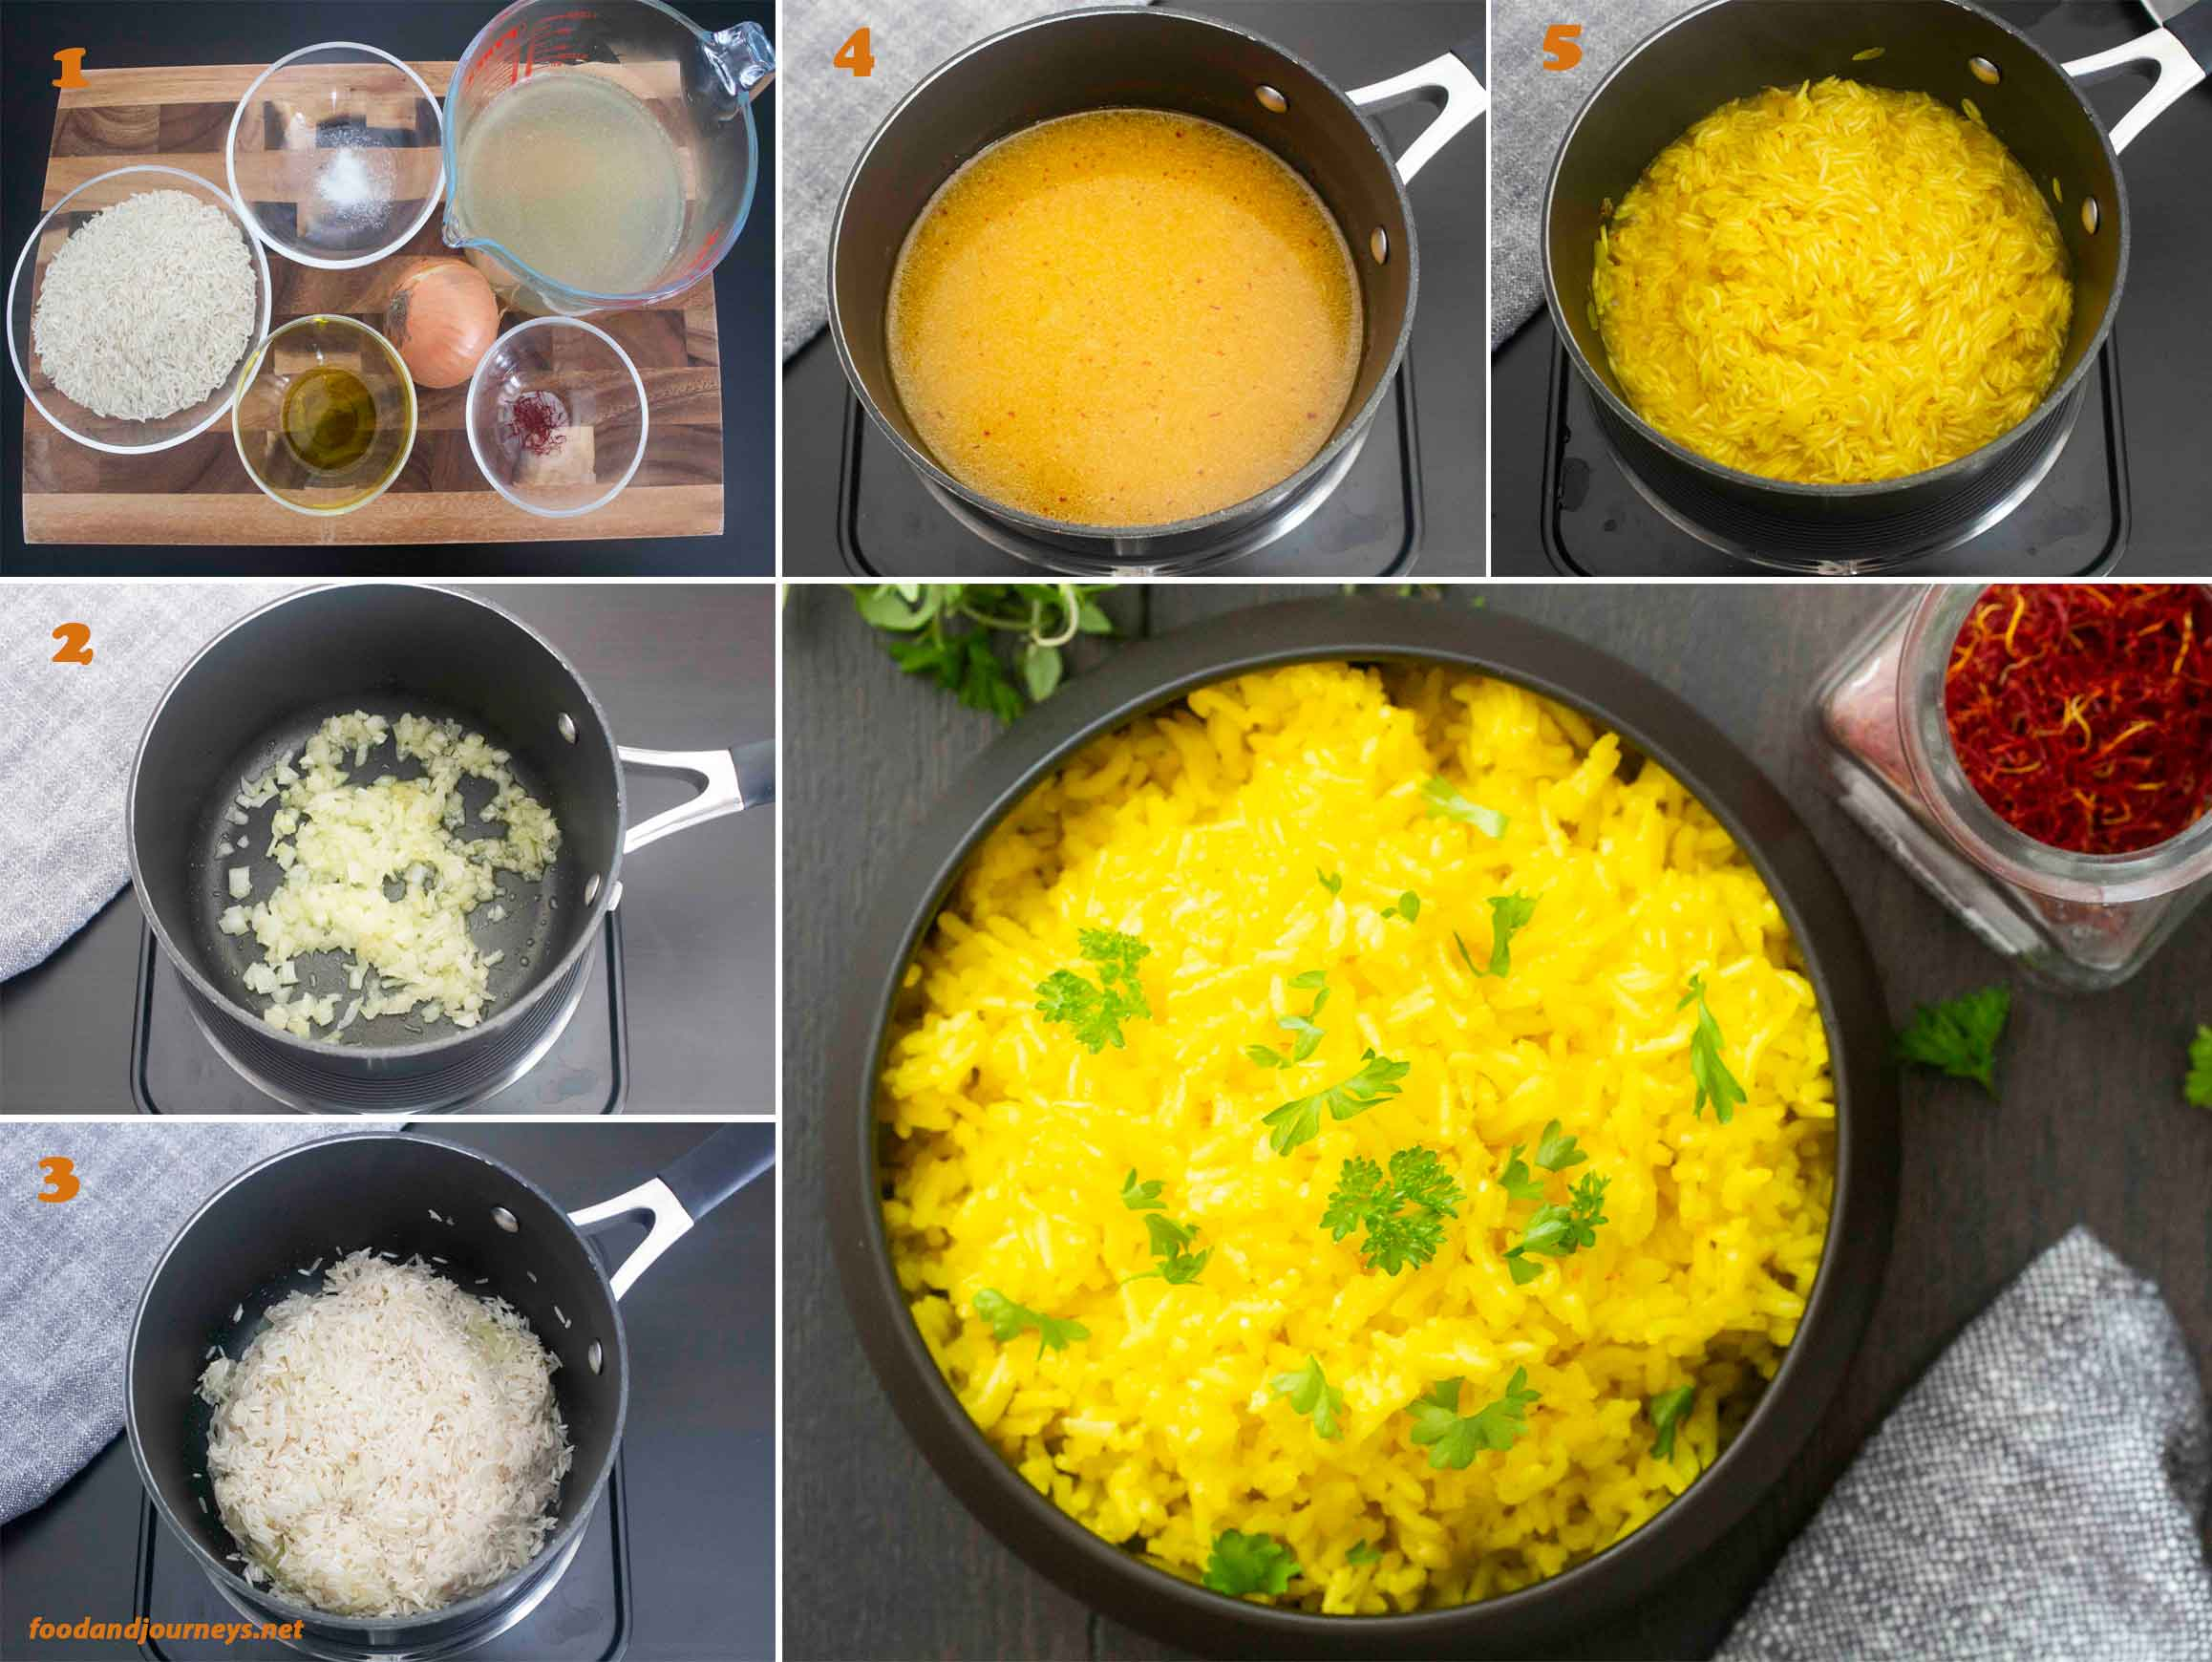 A collage of images showing how to prepare Saffron Rice.